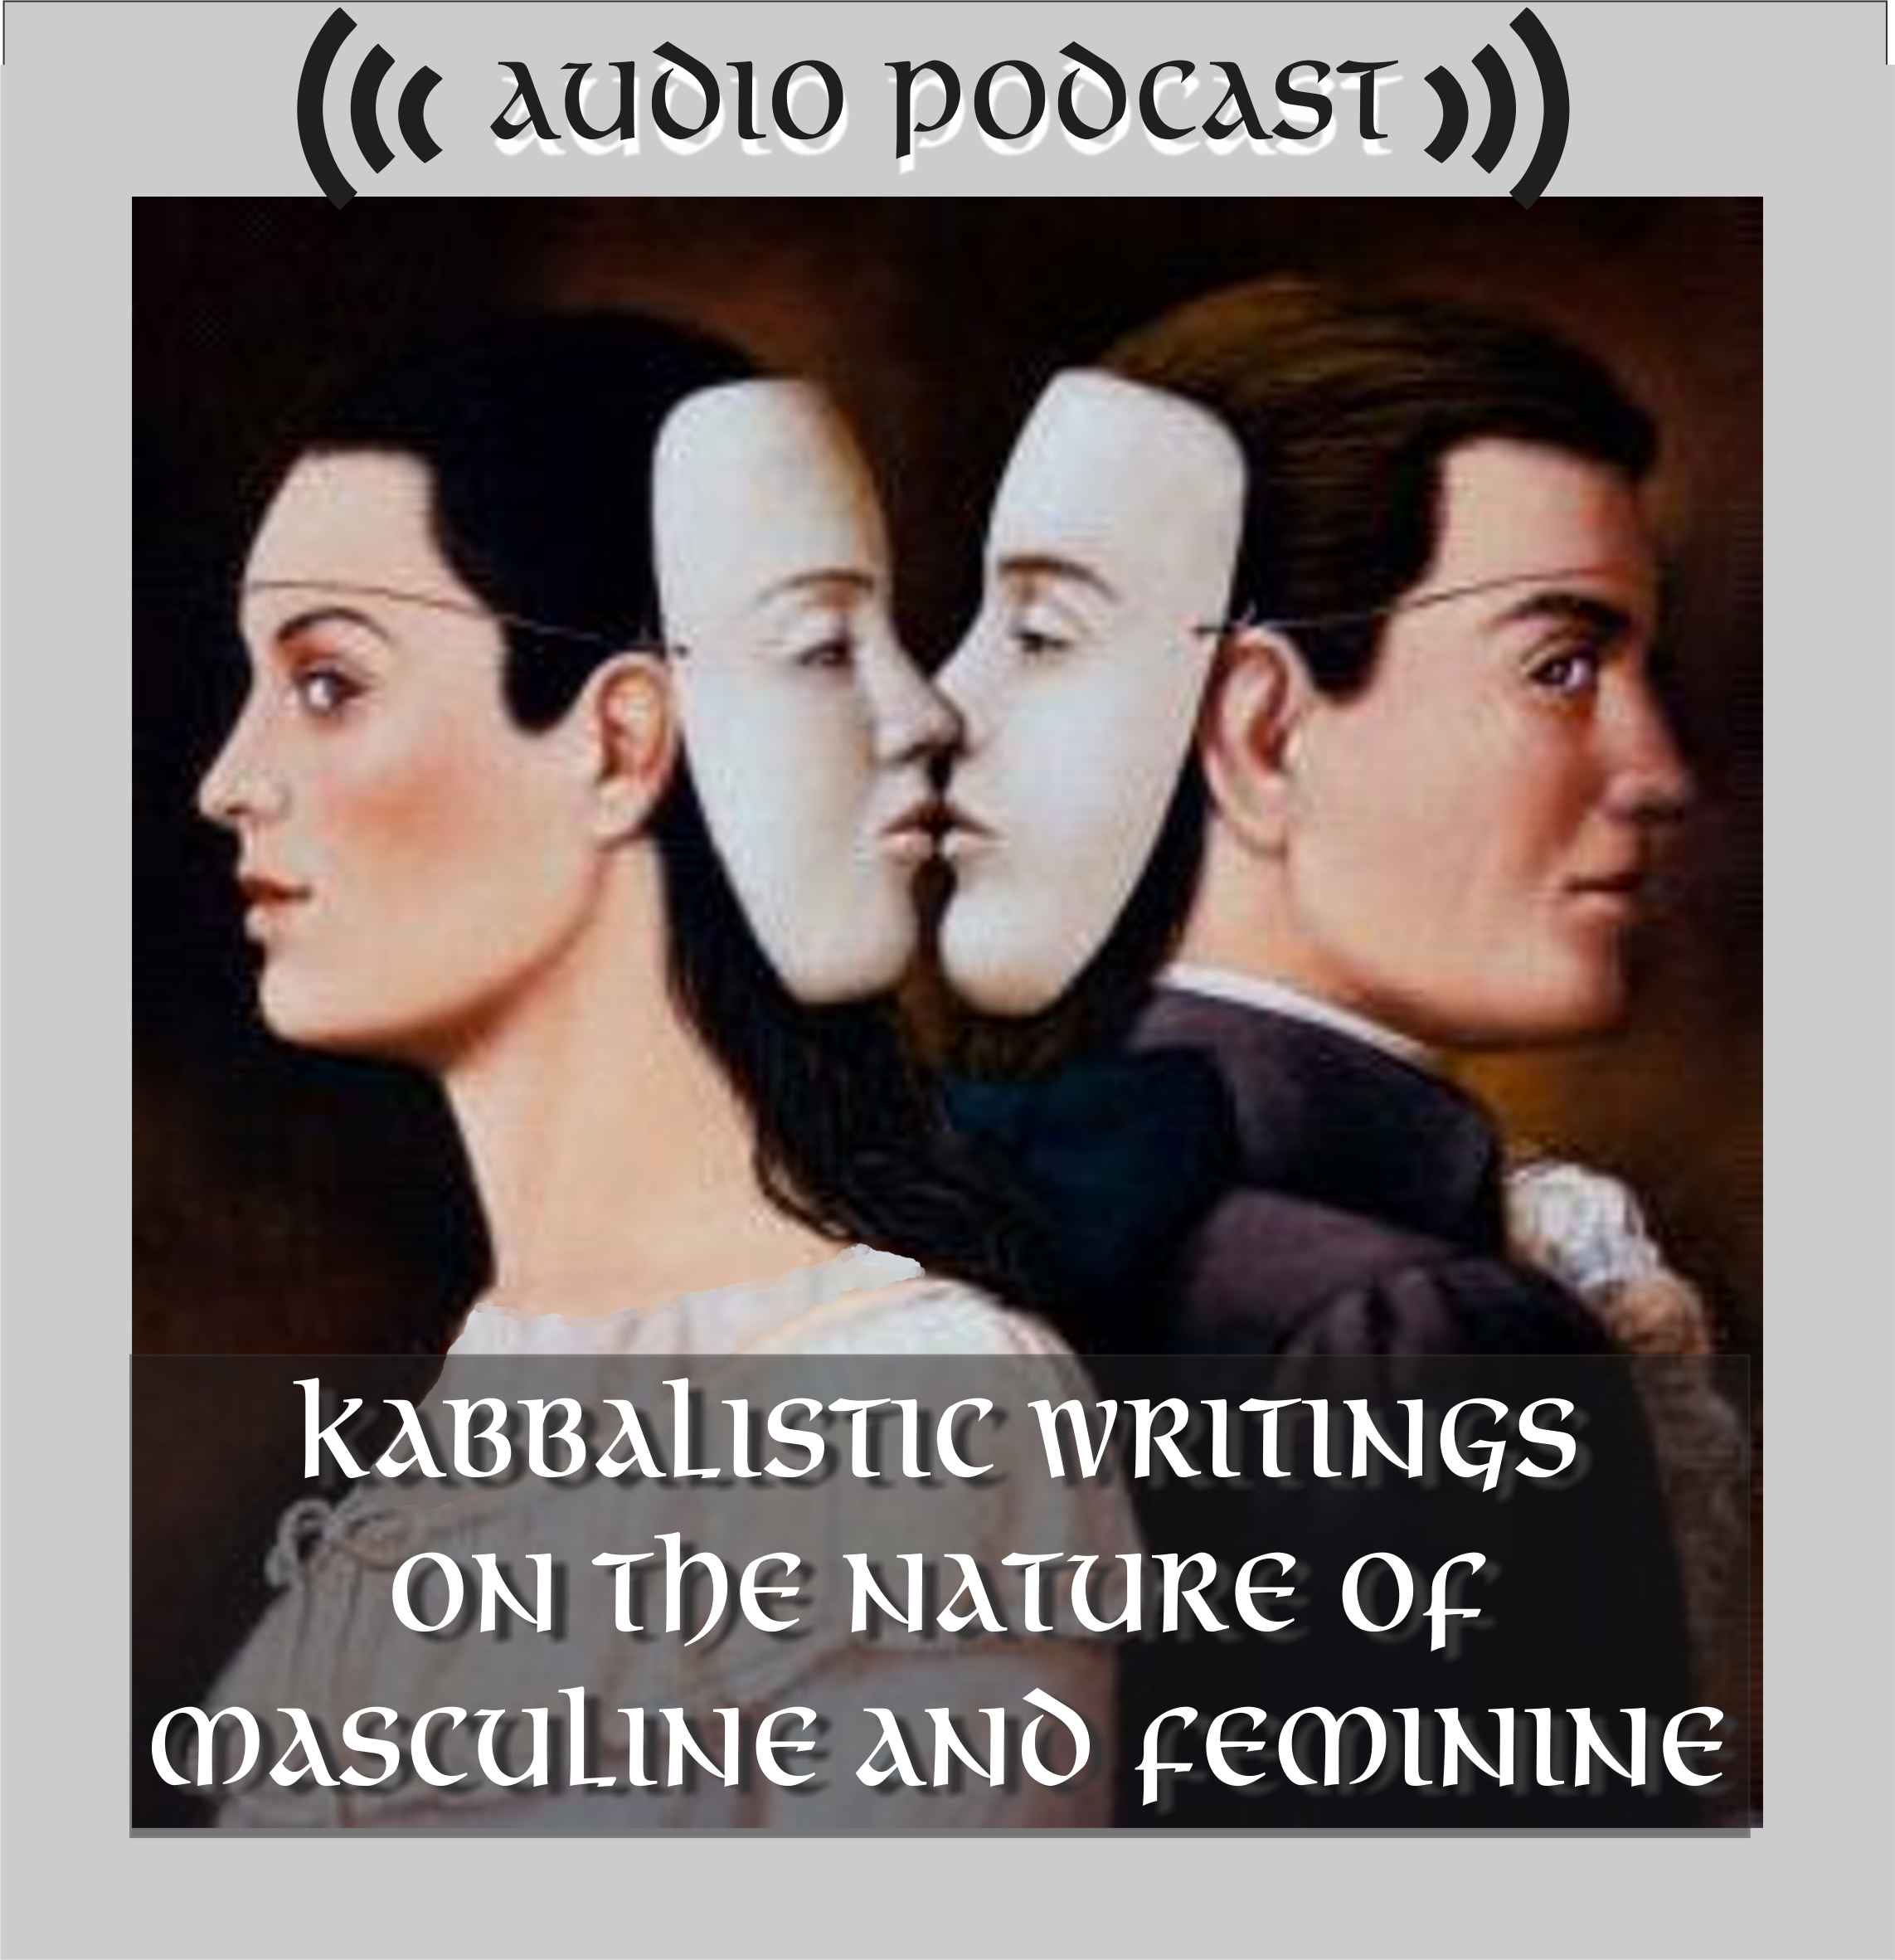 Kabbalistic Writings on the Nature of Masculine and Feminine—Podcasts